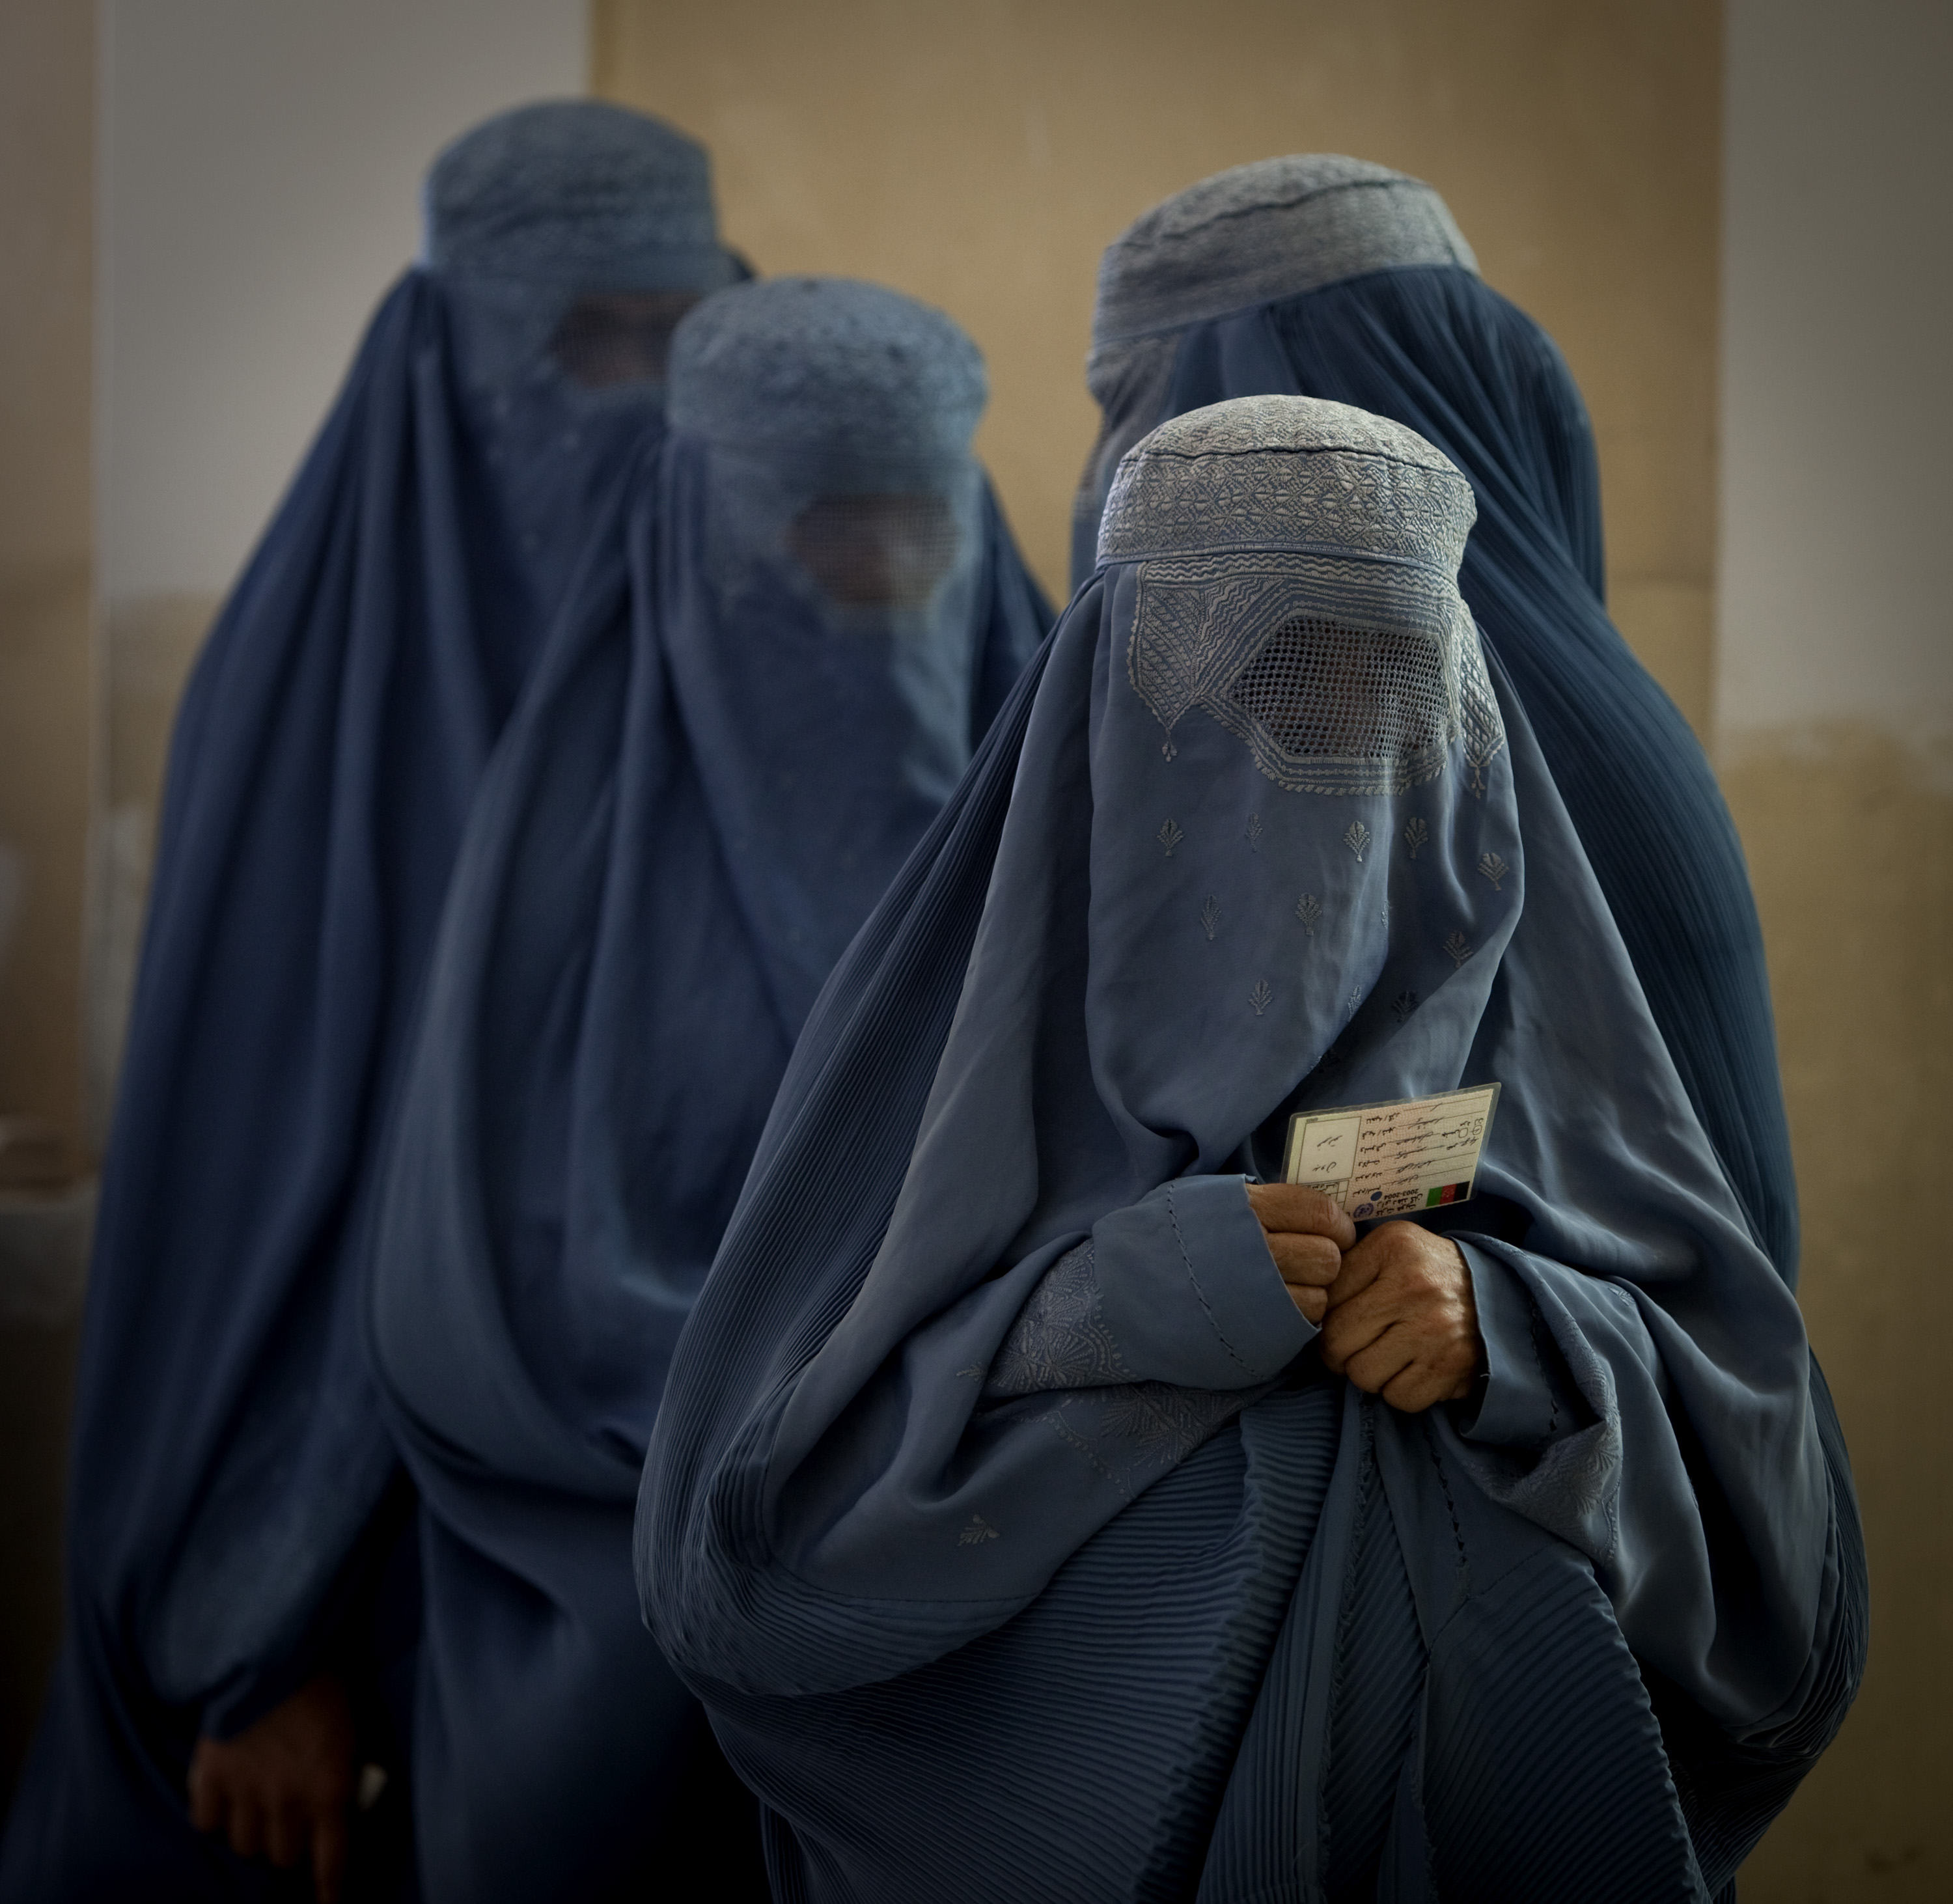 Banned In Uk: Over Half Of The UK Want To Ban The Burka